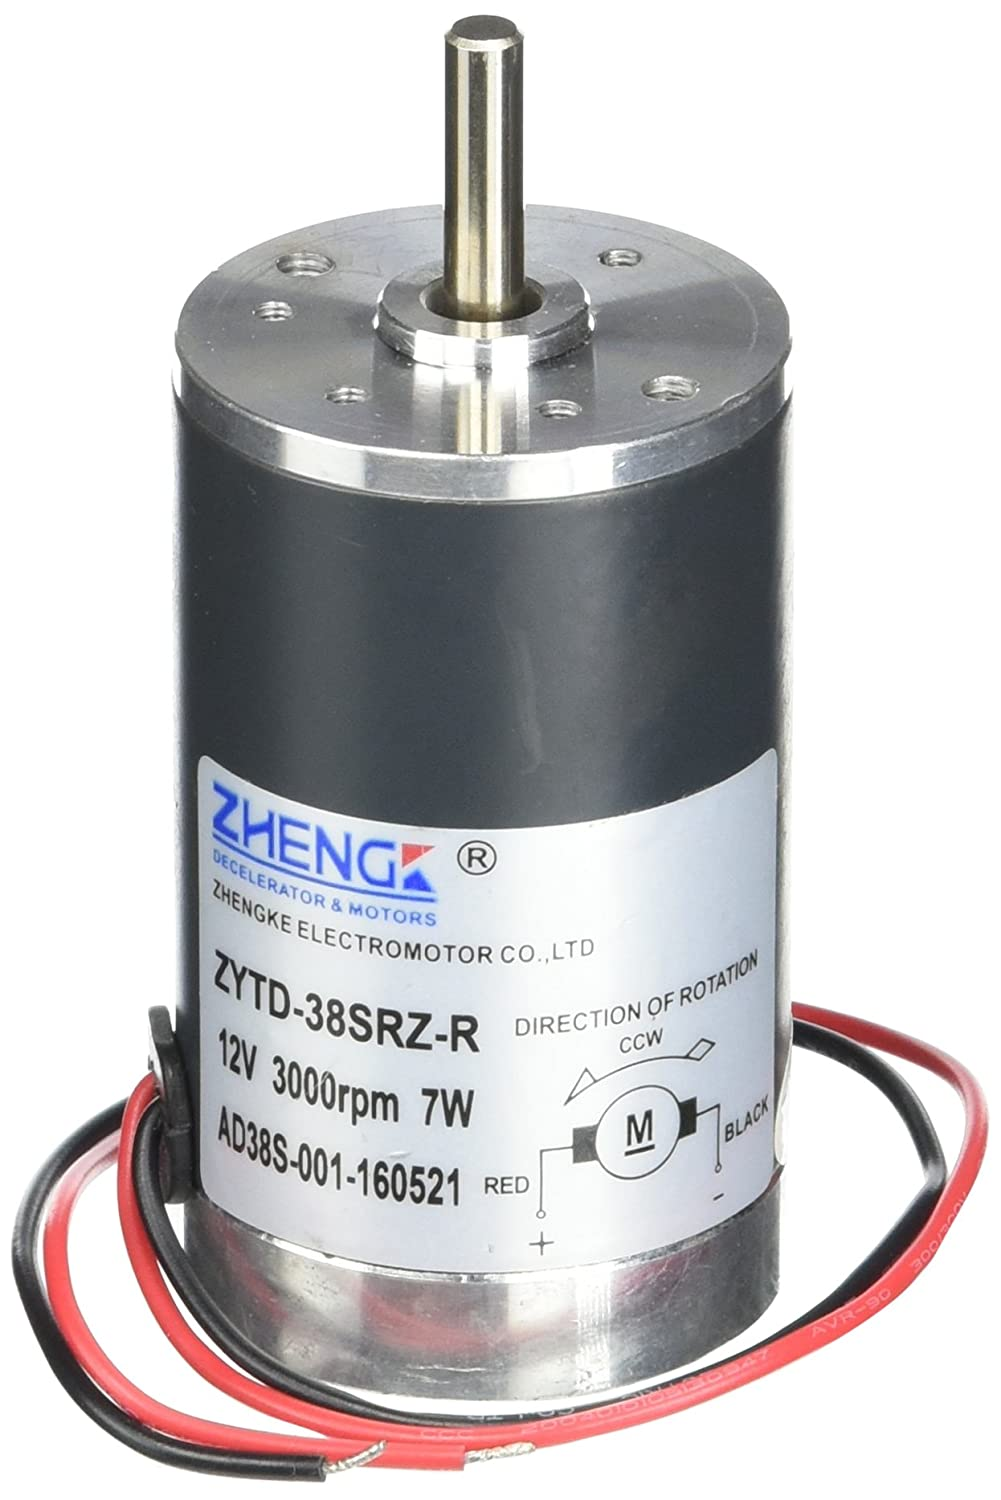 Motore elettrico brushed 300G.cm DC 12V 0.58A 3000RPM Sourcingmap a11110700ux0357